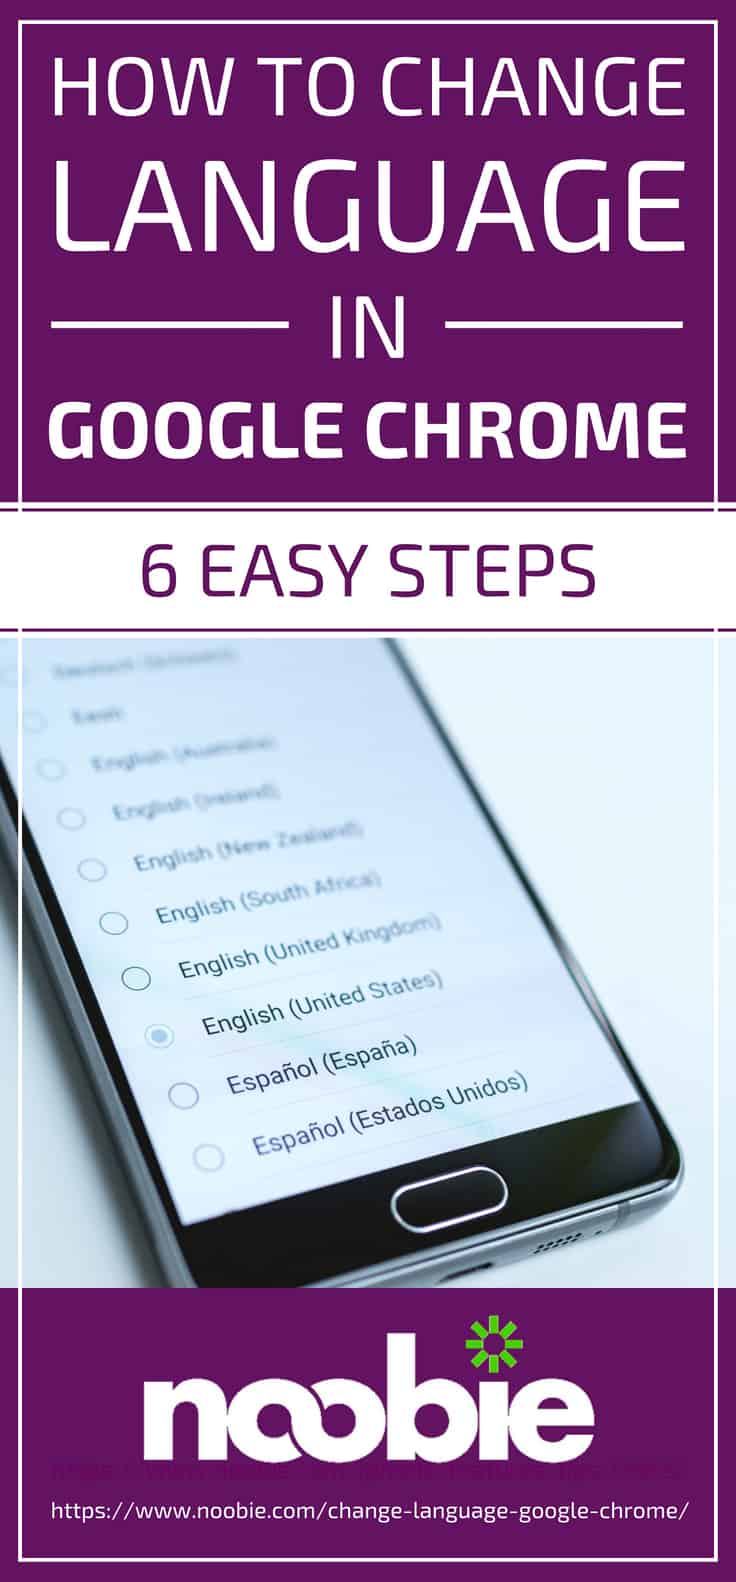 PIN_How-To-Change-Language-In-Google-Chrome-6-Easy-Steps-1